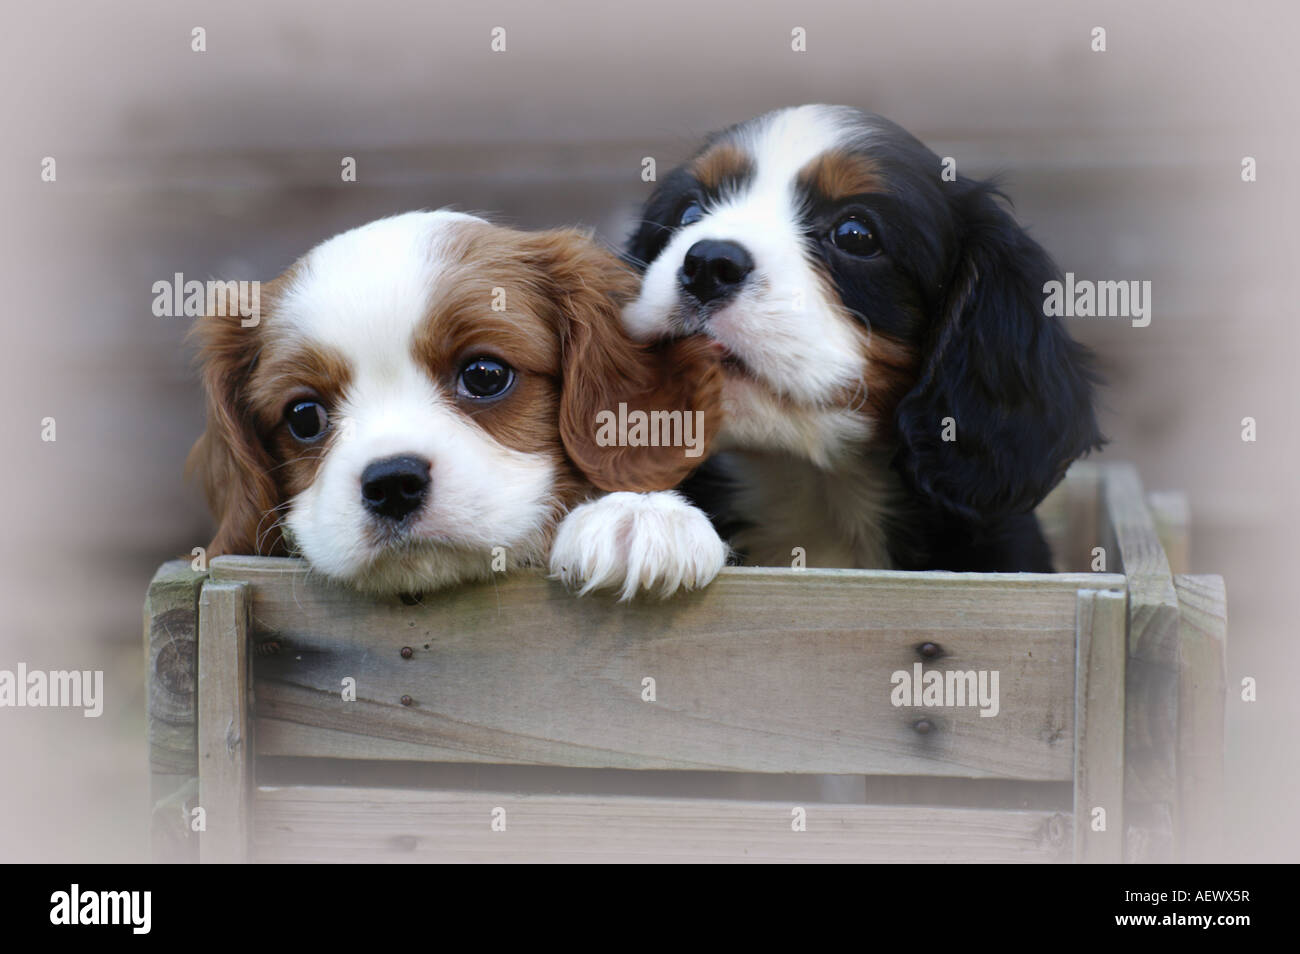 Two Cute Cavalier King Charles Spaniel Puppies In A Crate With One Stock Photo Alamy